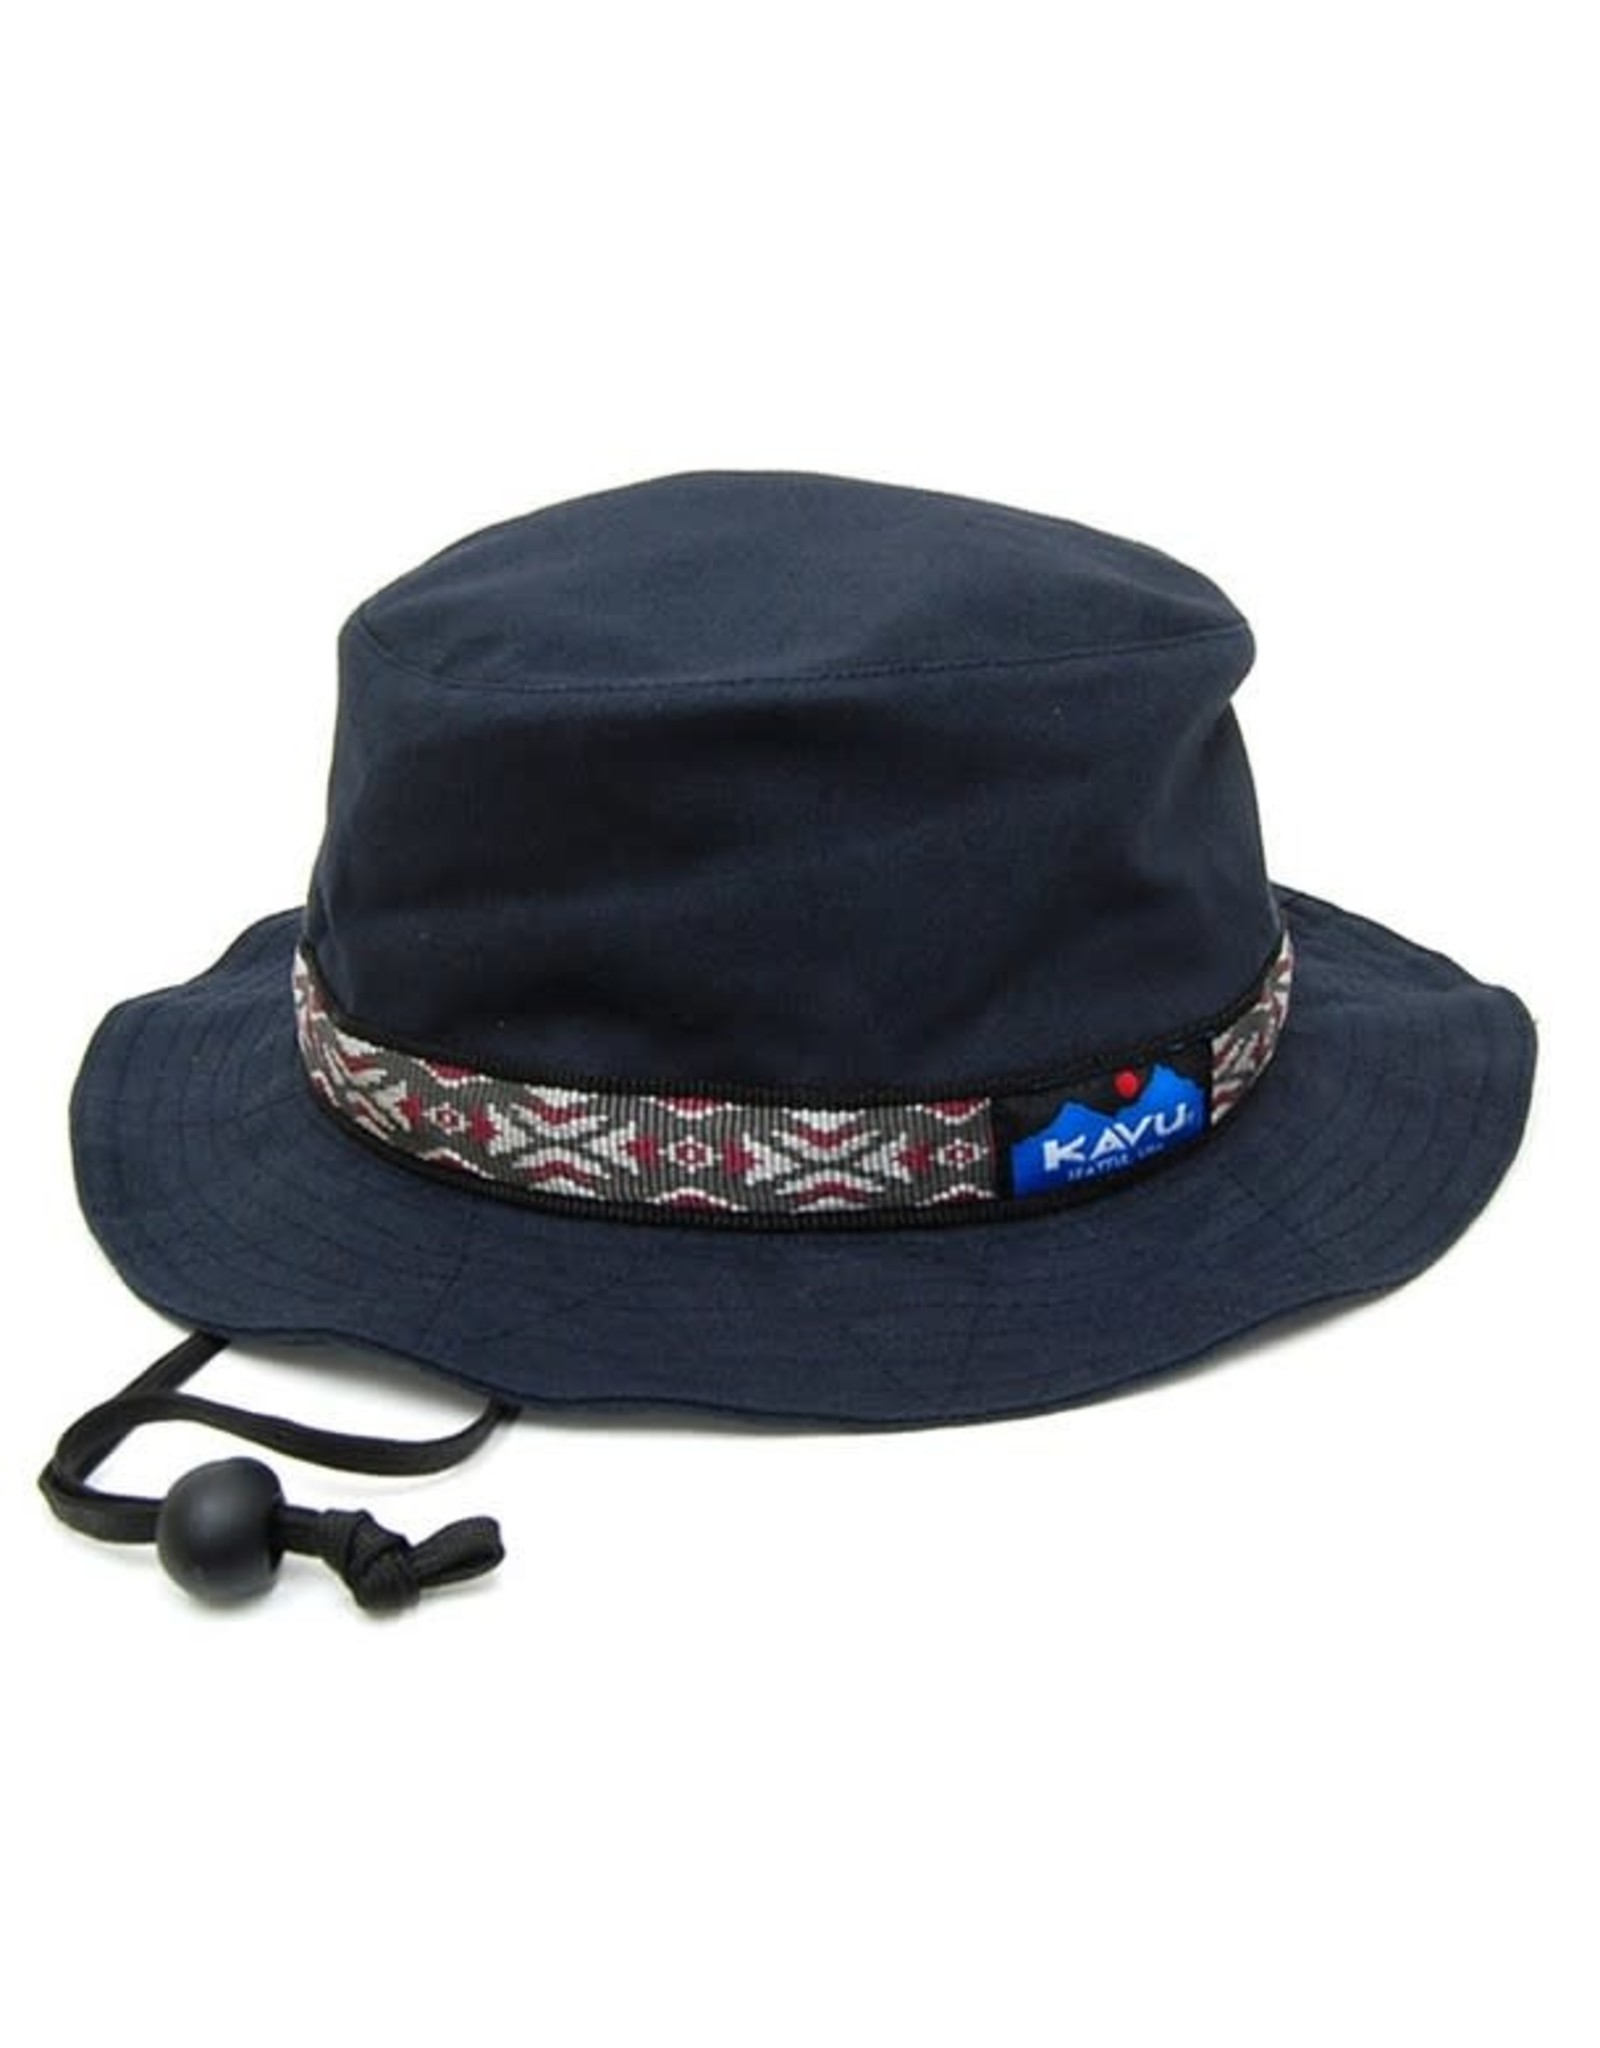 Kavu Kavu Strap Bucket Hat: Black- S